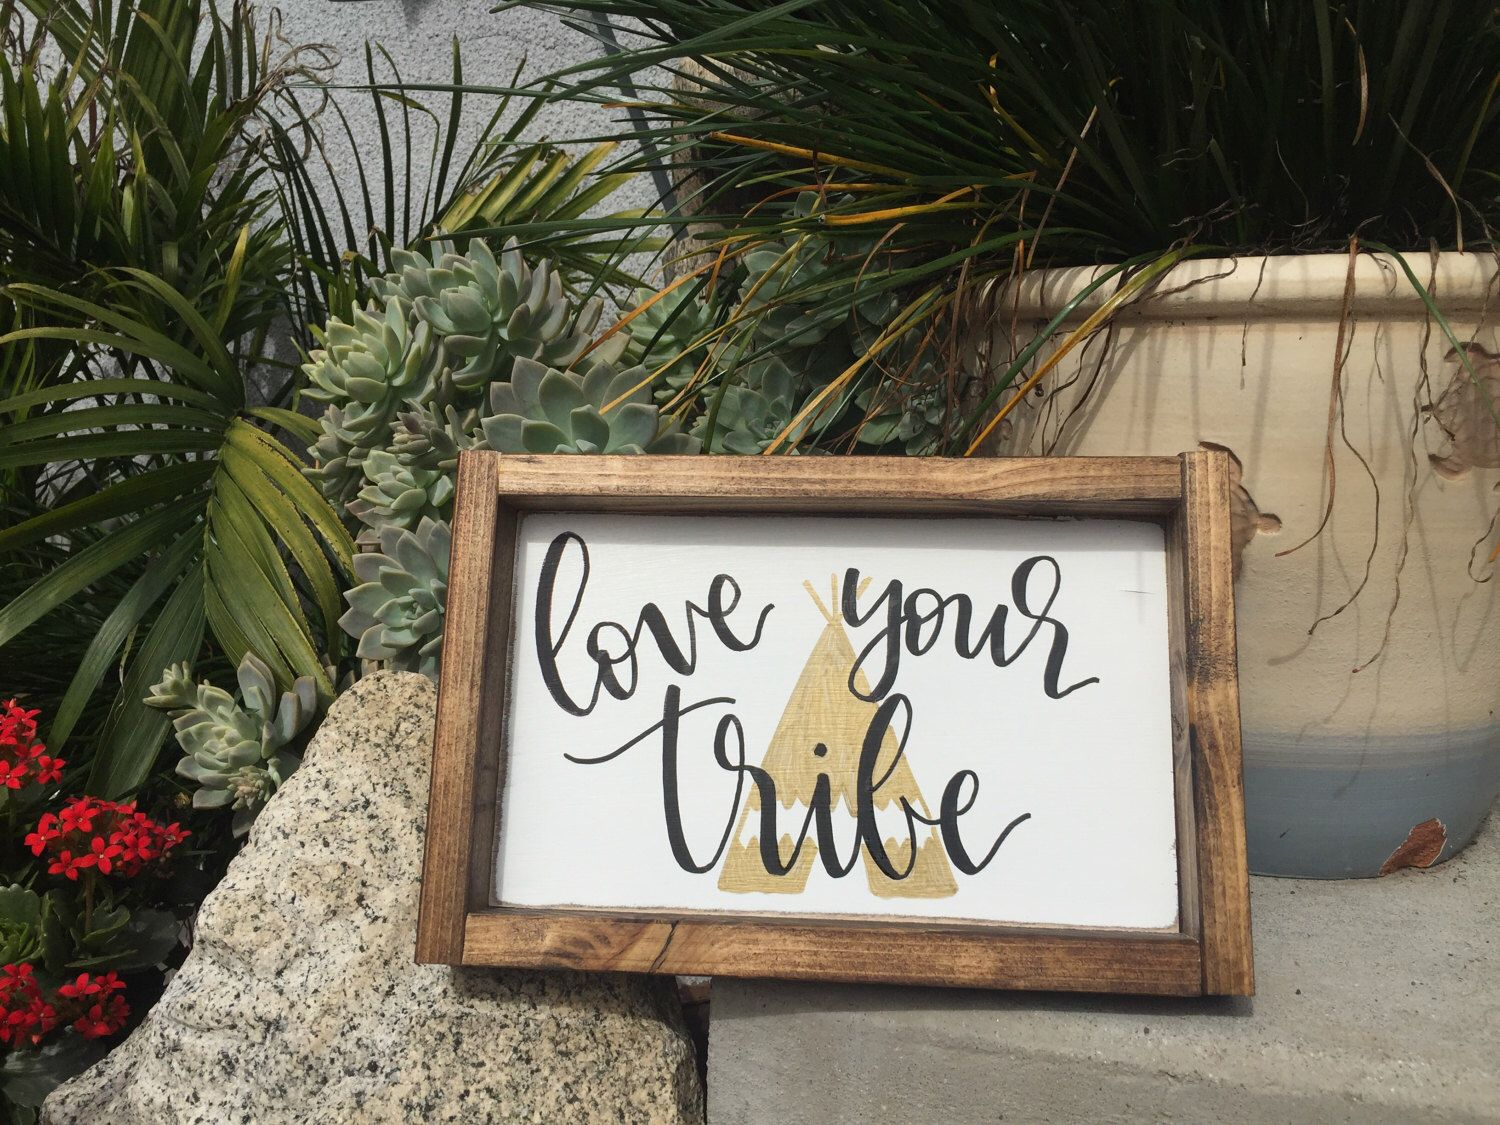 Love Your Tribe Sign, Framed Wood Sign, Rustic Love Your Tribe Sign, Wood Tribe Sign by TheSandyFarmhouse on Etsy https://www.etsy.com/listing/502613636/love-your-tribe-sign-framed-wood-sign